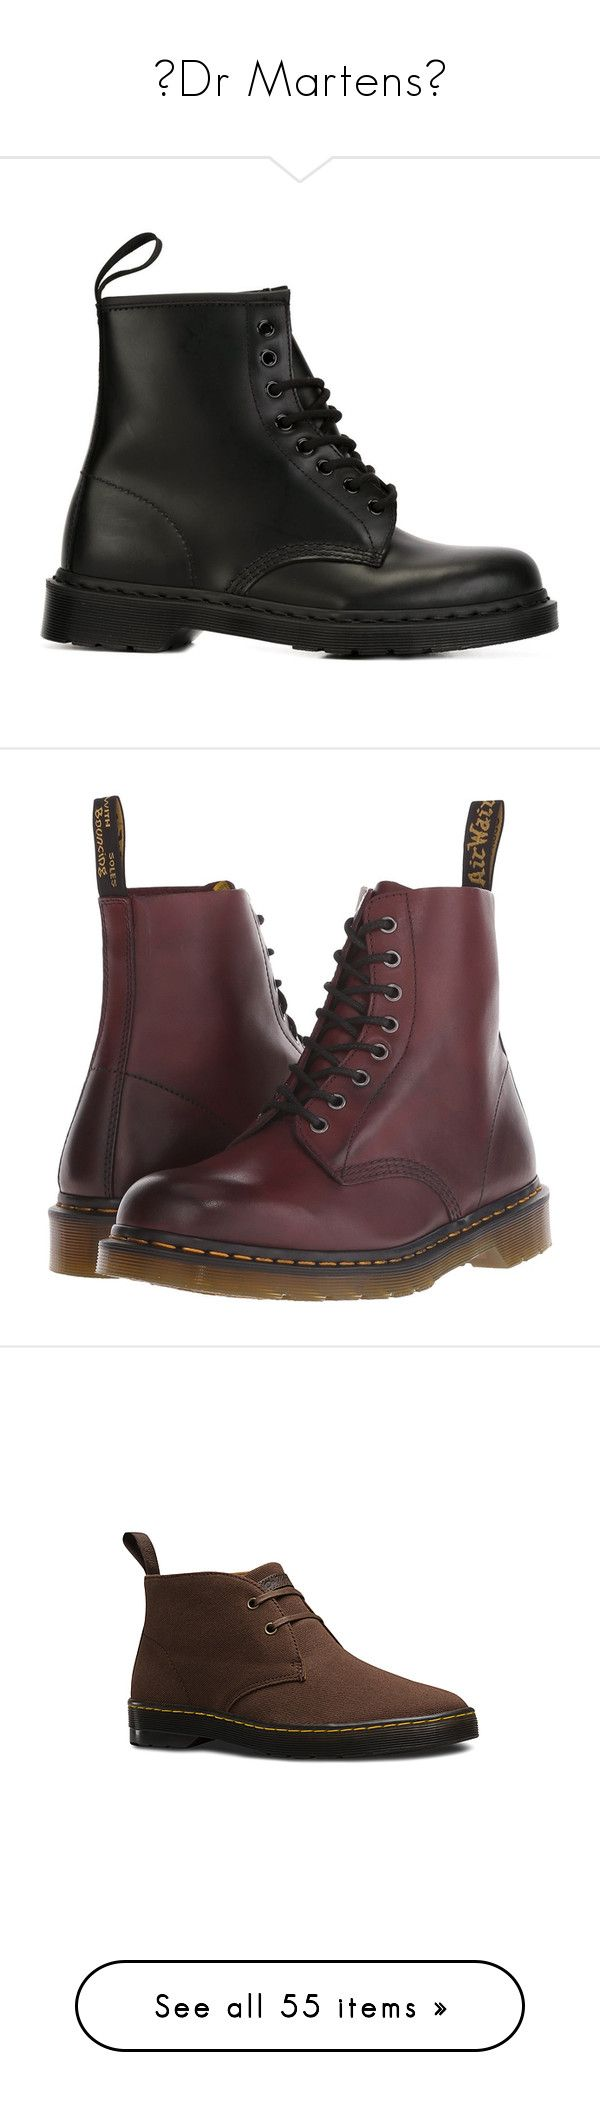 """≡Dr Martens≡"" by twentyonesecondsofsummer ❤ liked on Polyvore featuring men's fashion, men's shoes, men's boots, mens boots, dr martens mens boots, mens short boots, mens shoes, dr martens mens shoes, shoes and boots"